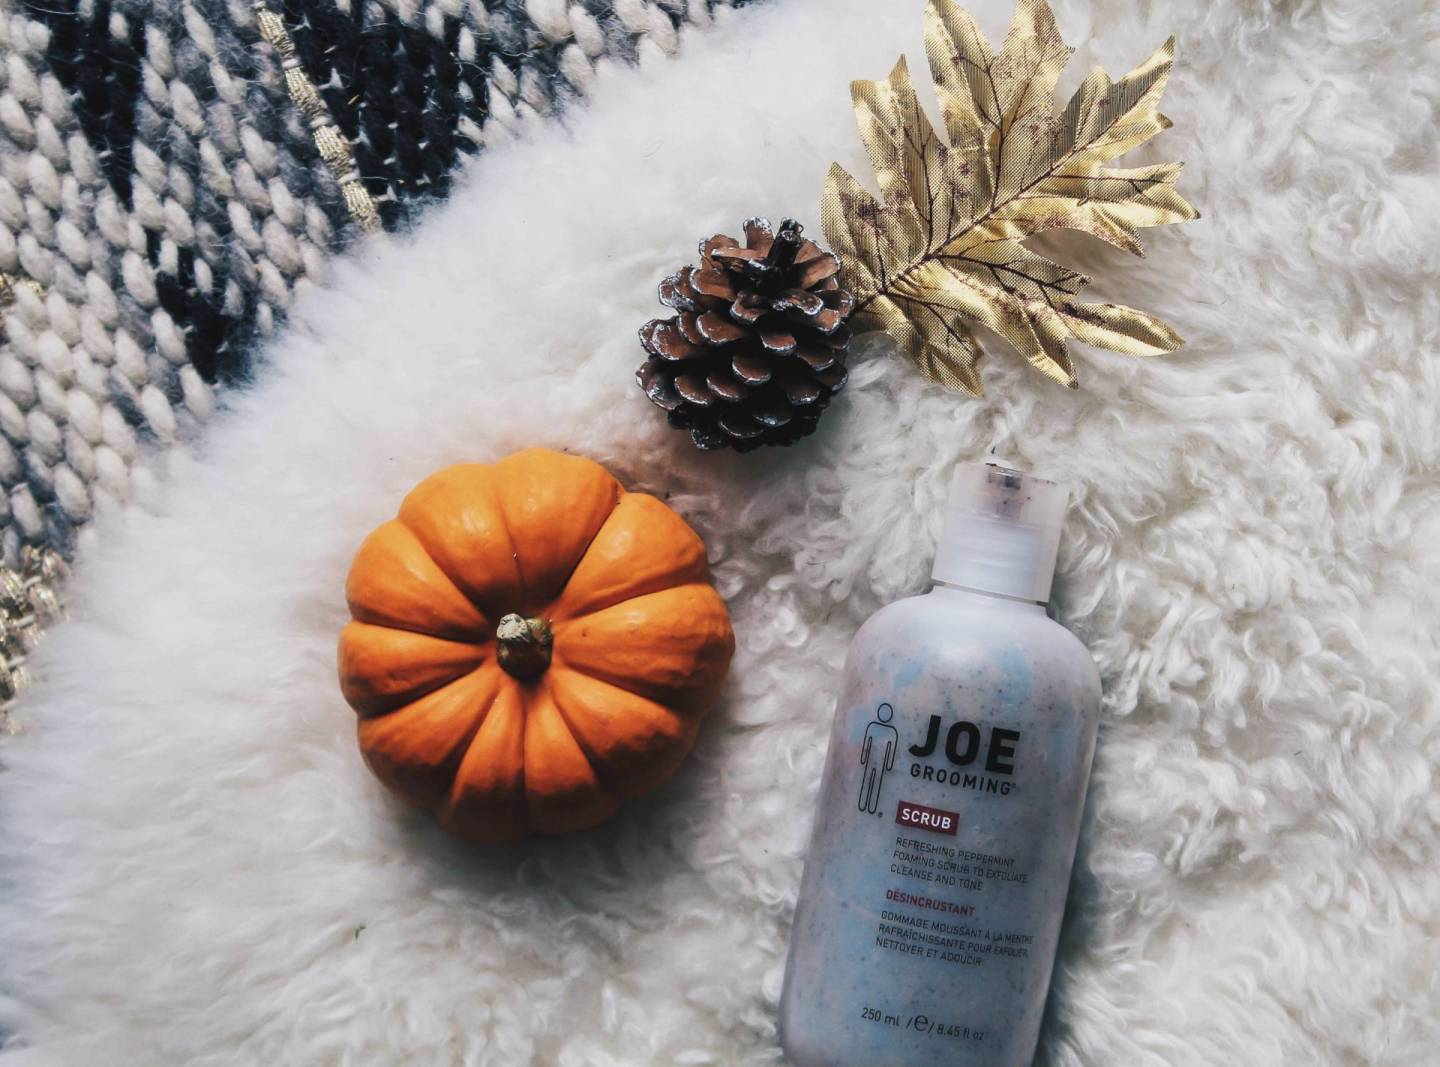 OUR THOUGHTS: JOE GROOMING SCRUB